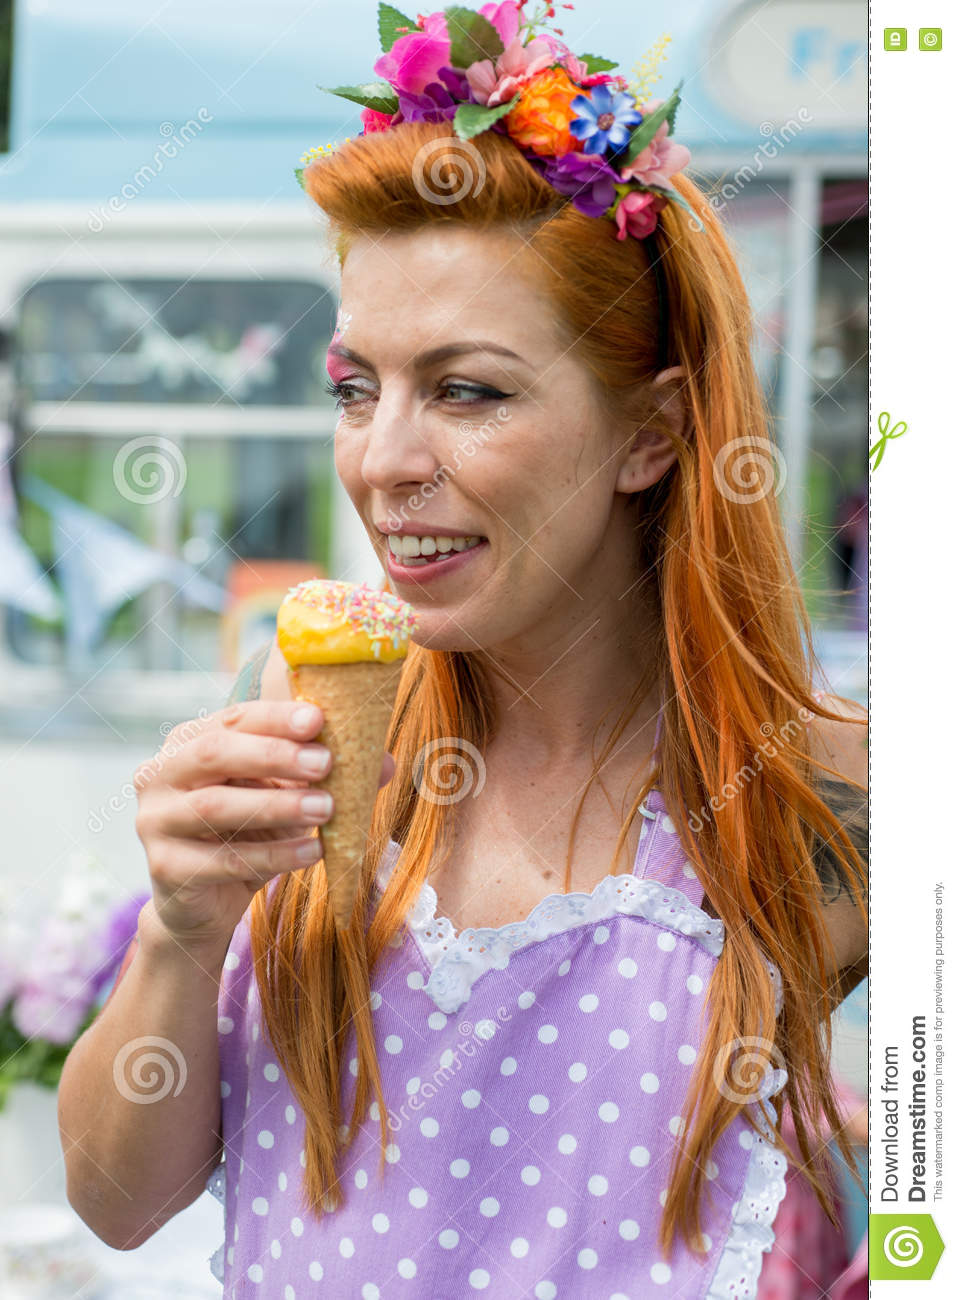 Smiling white lady wearing flower headband holding ice cream